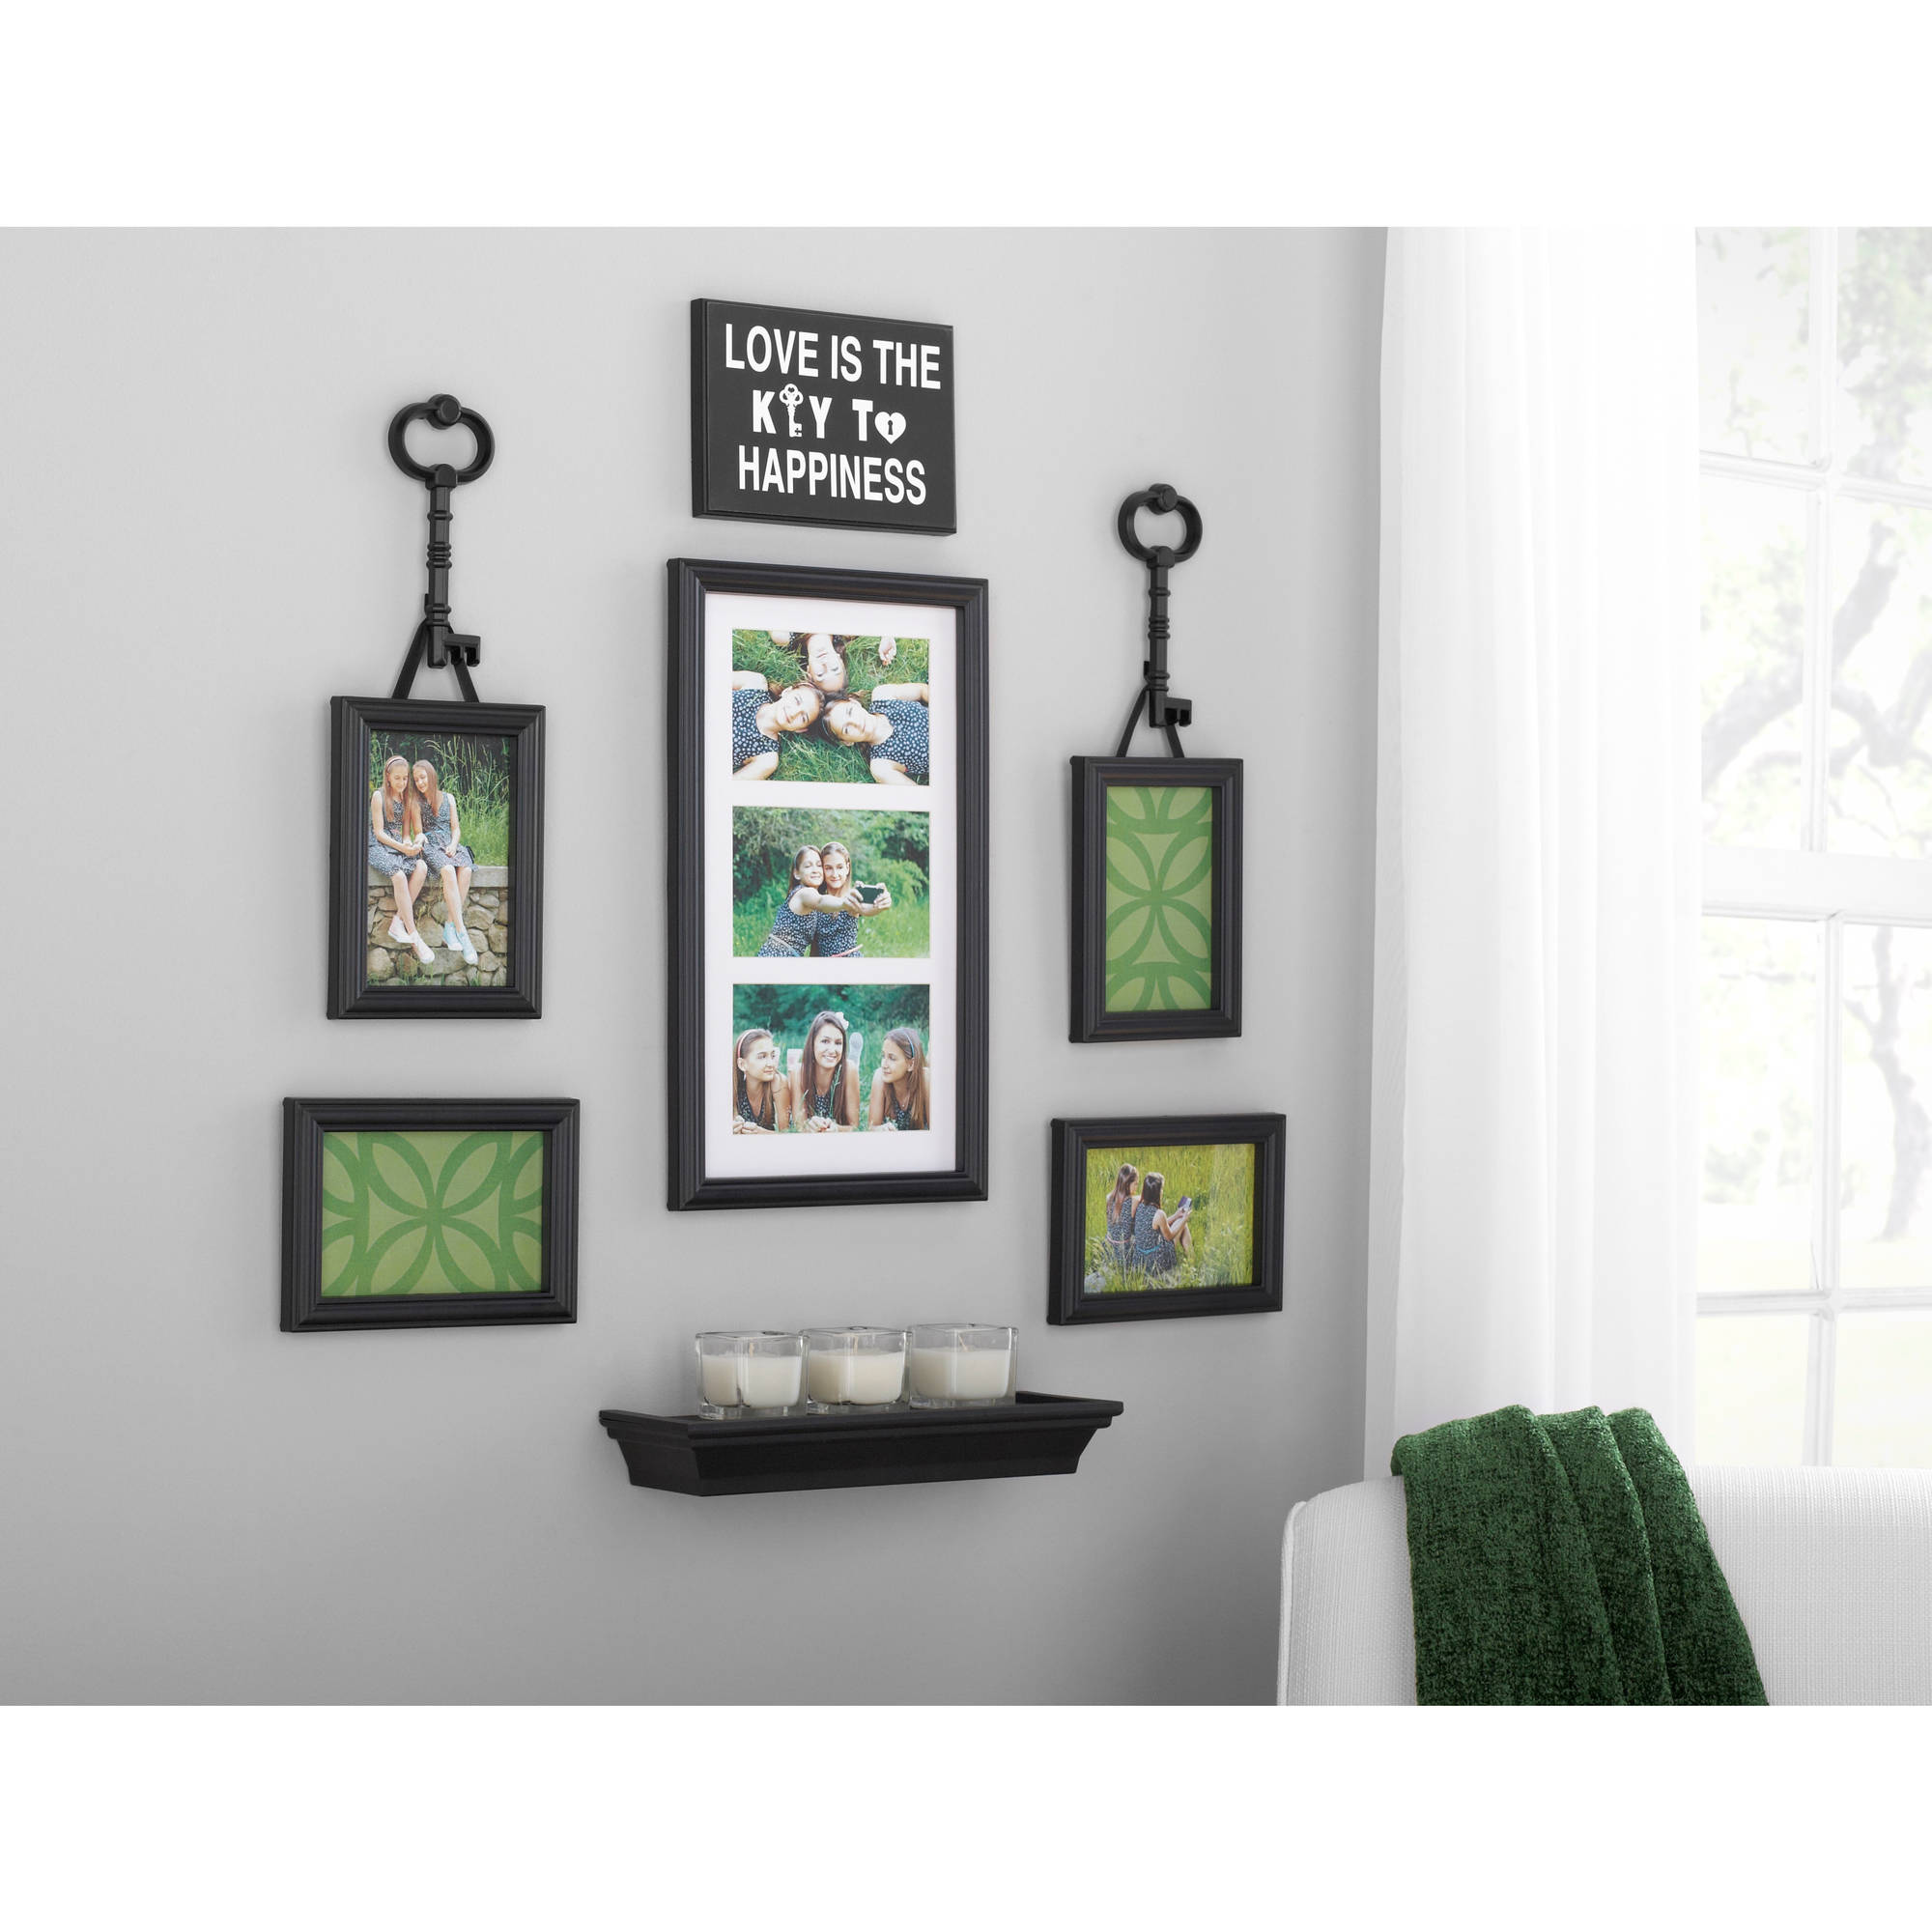 Mainstays 9 piece key expression wall frame set walmart jeuxipadfo Images